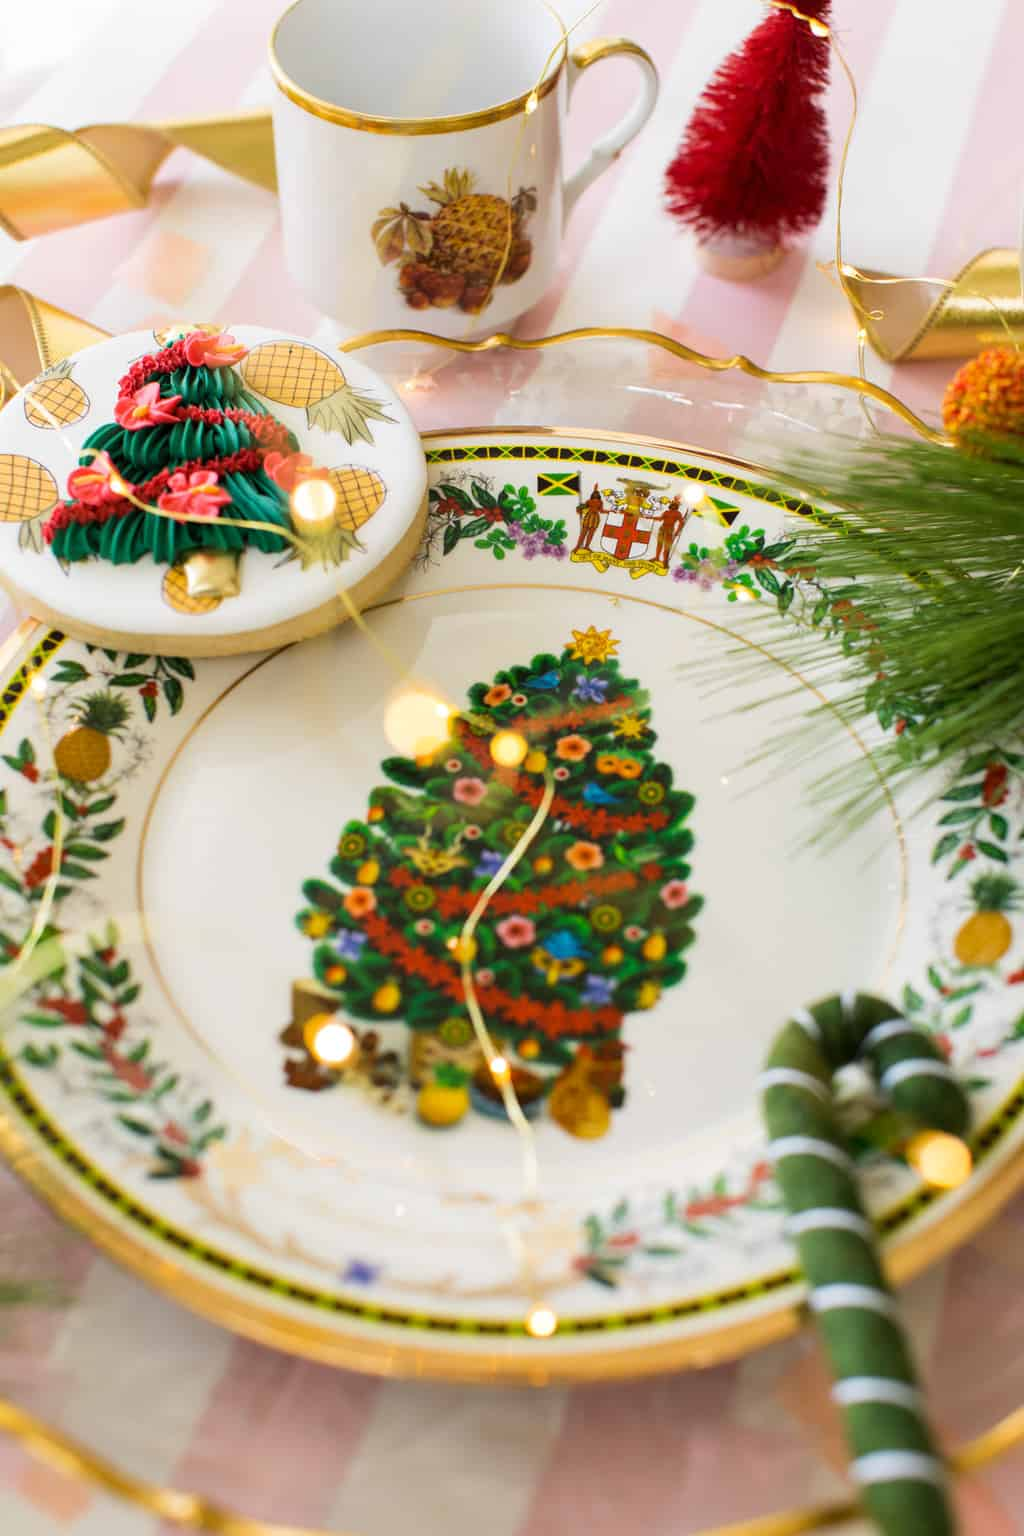 Caribbean Christmas Serving Plate by Replacements Ltd by Ashley Rose of Sugar & Cloth